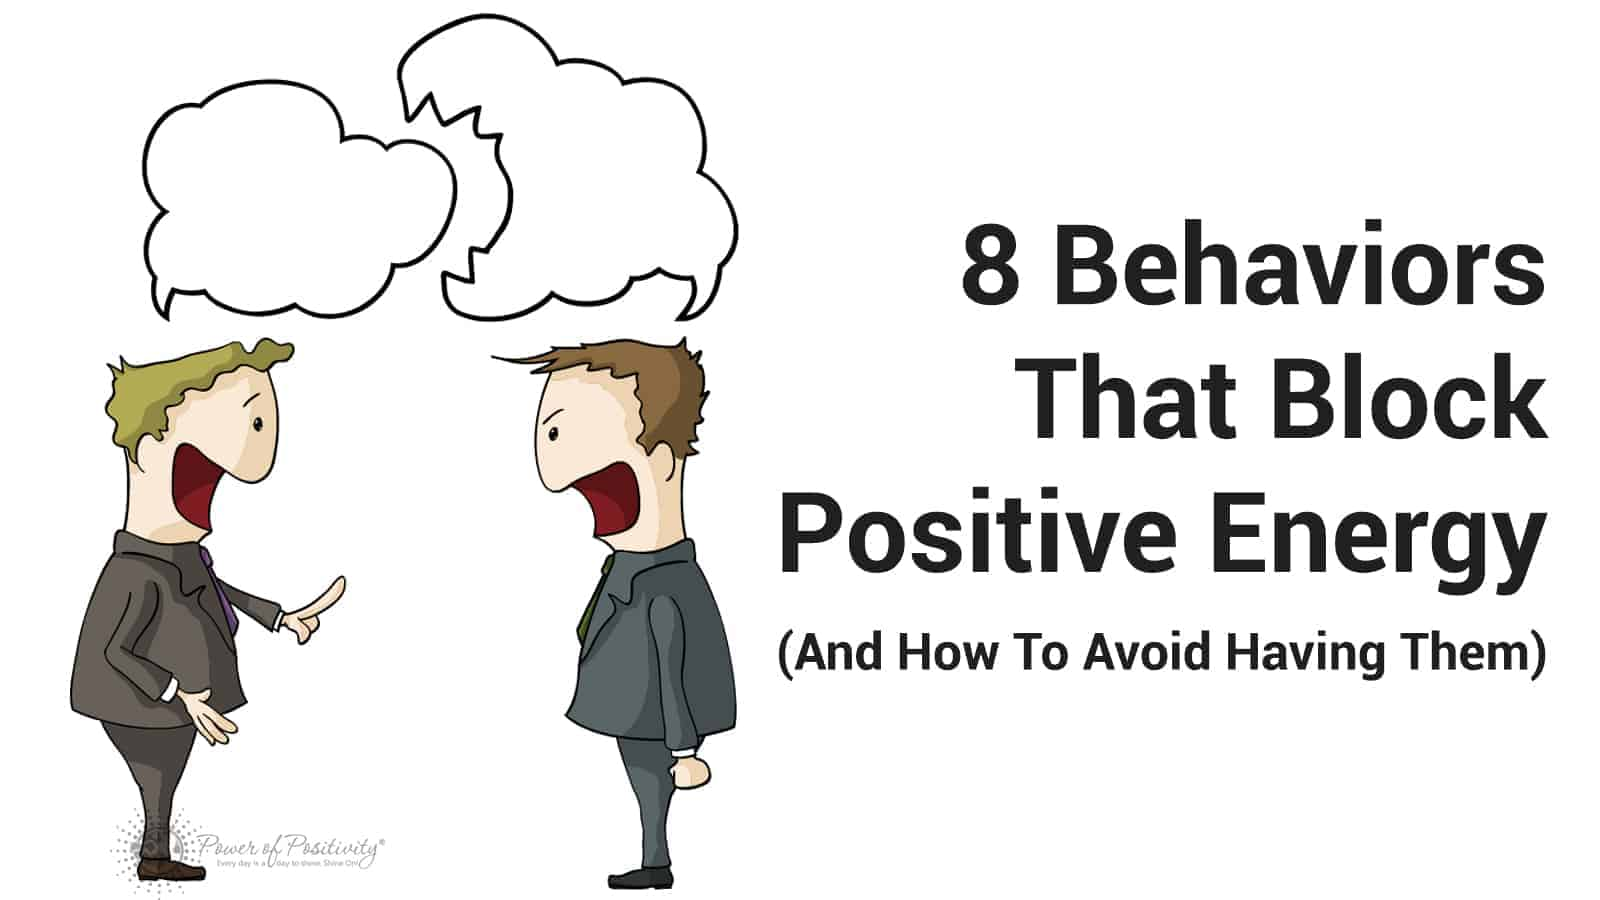 8 Behaviors That Block Positive Energy And How To Avoid